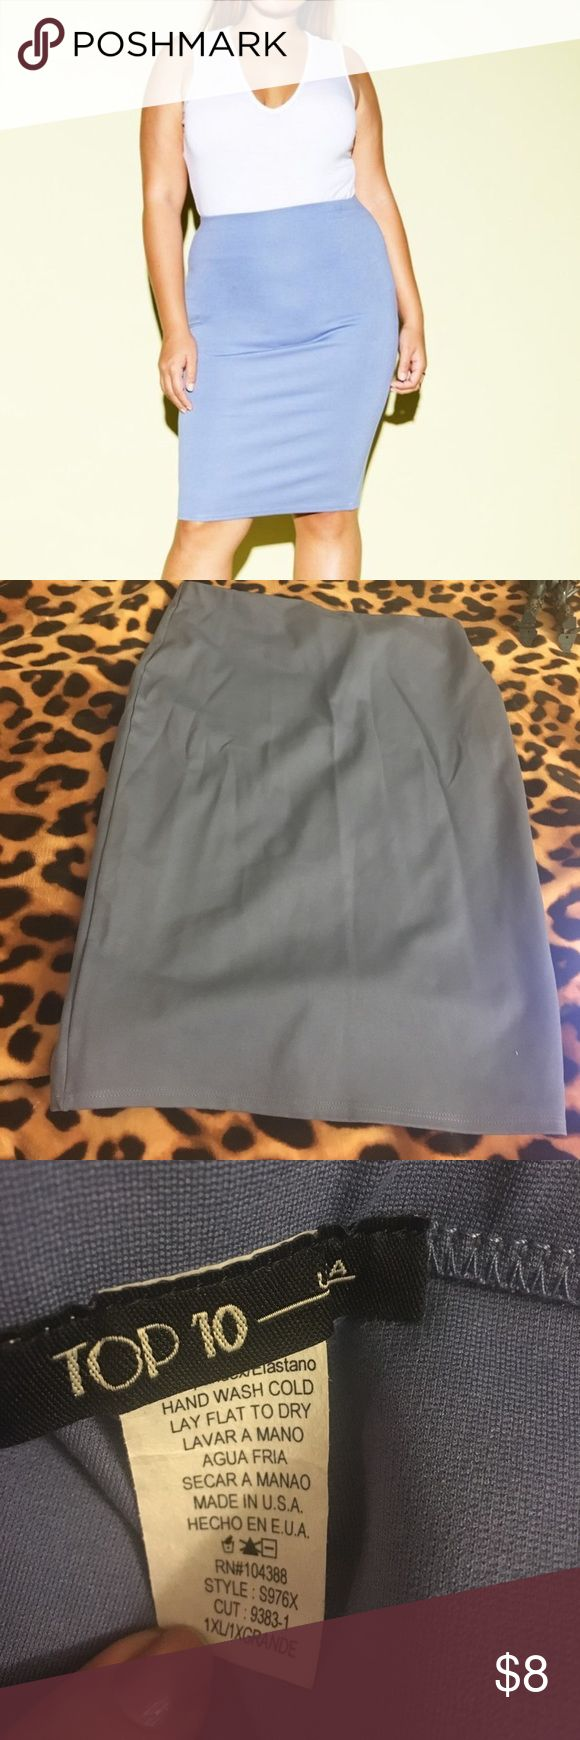 Blue pencil skirt Size 1X but more like a Large. No flaws Skirts Midi